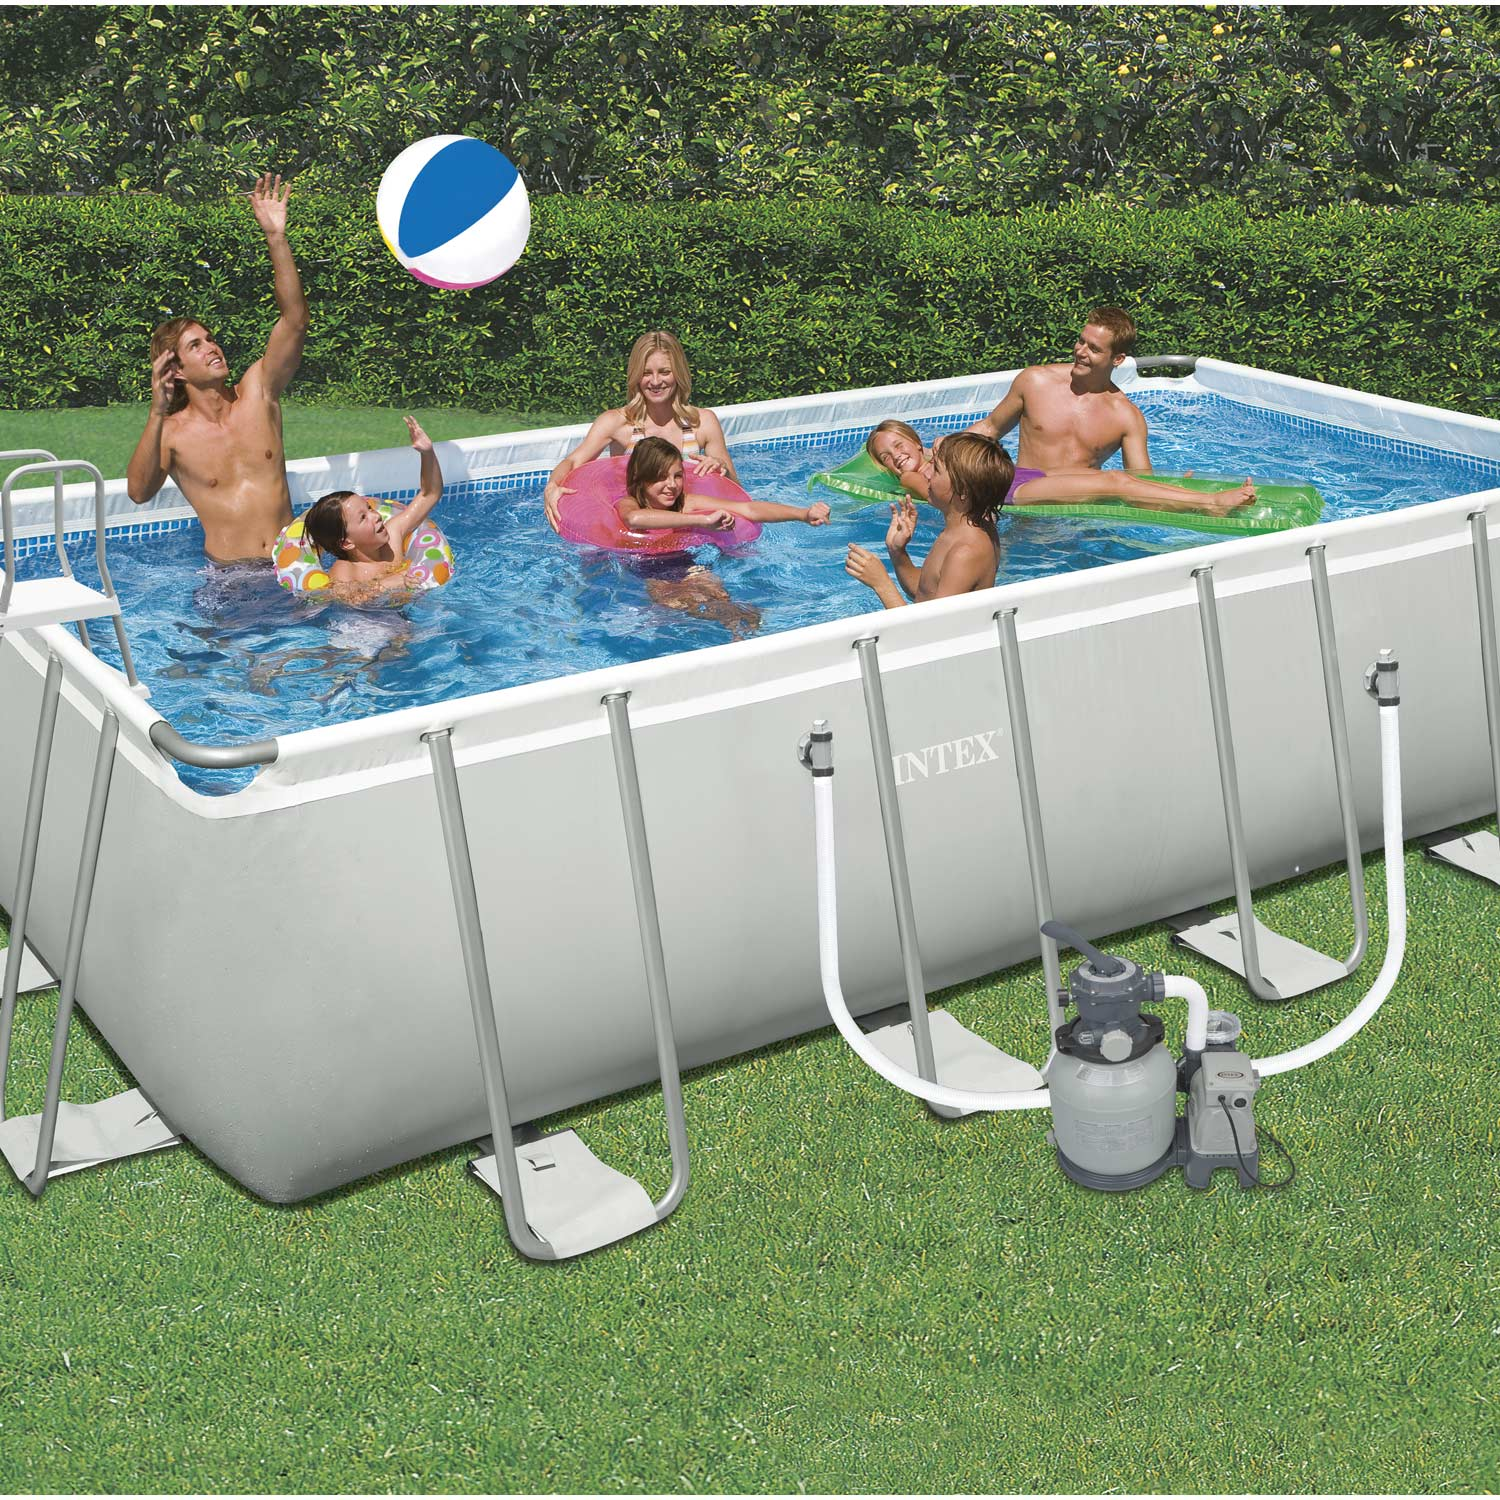 Piscine hors sol autoportante tubulaire intex l x l for Piscine hexagonale hors sol